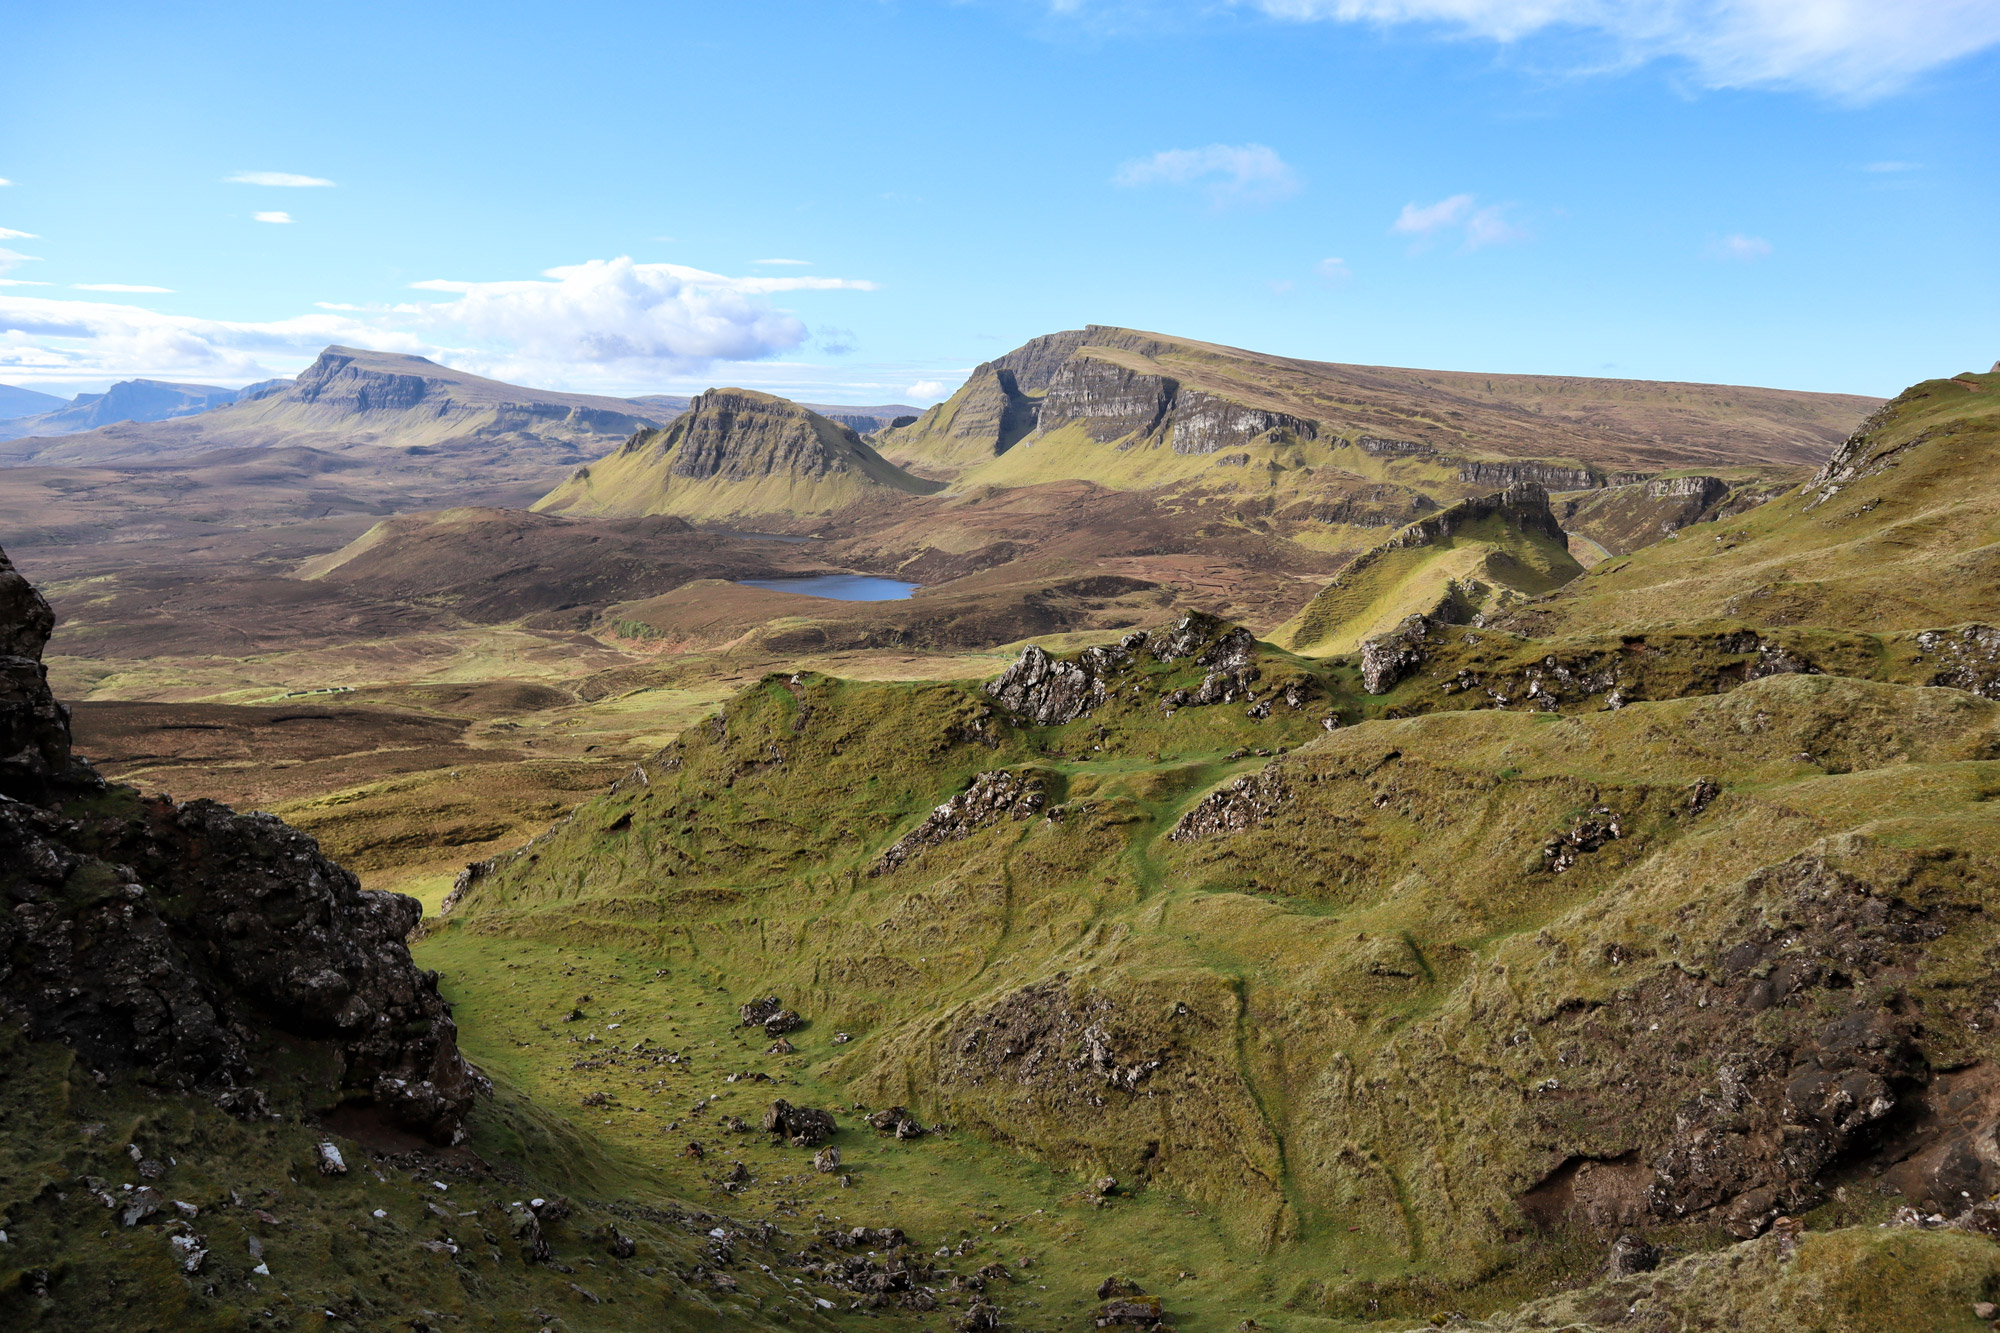 Foto van de maand: April 2019 - The Quiraing, Isle of Skye